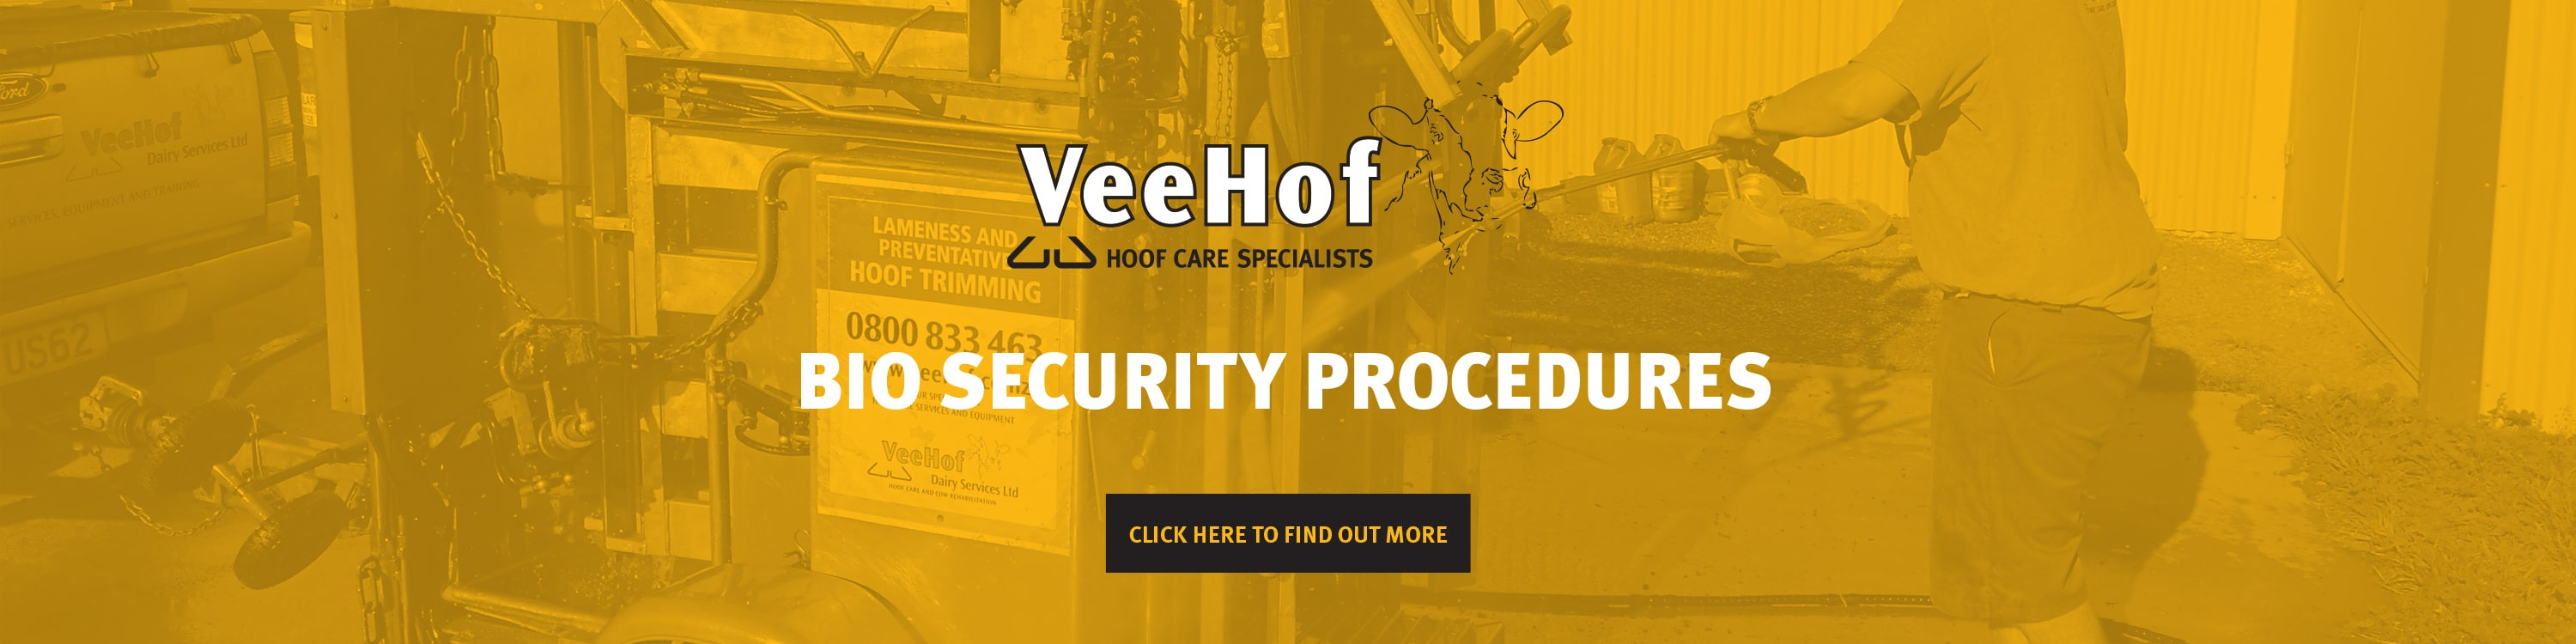 veehof-free-hoof-care-bio-security